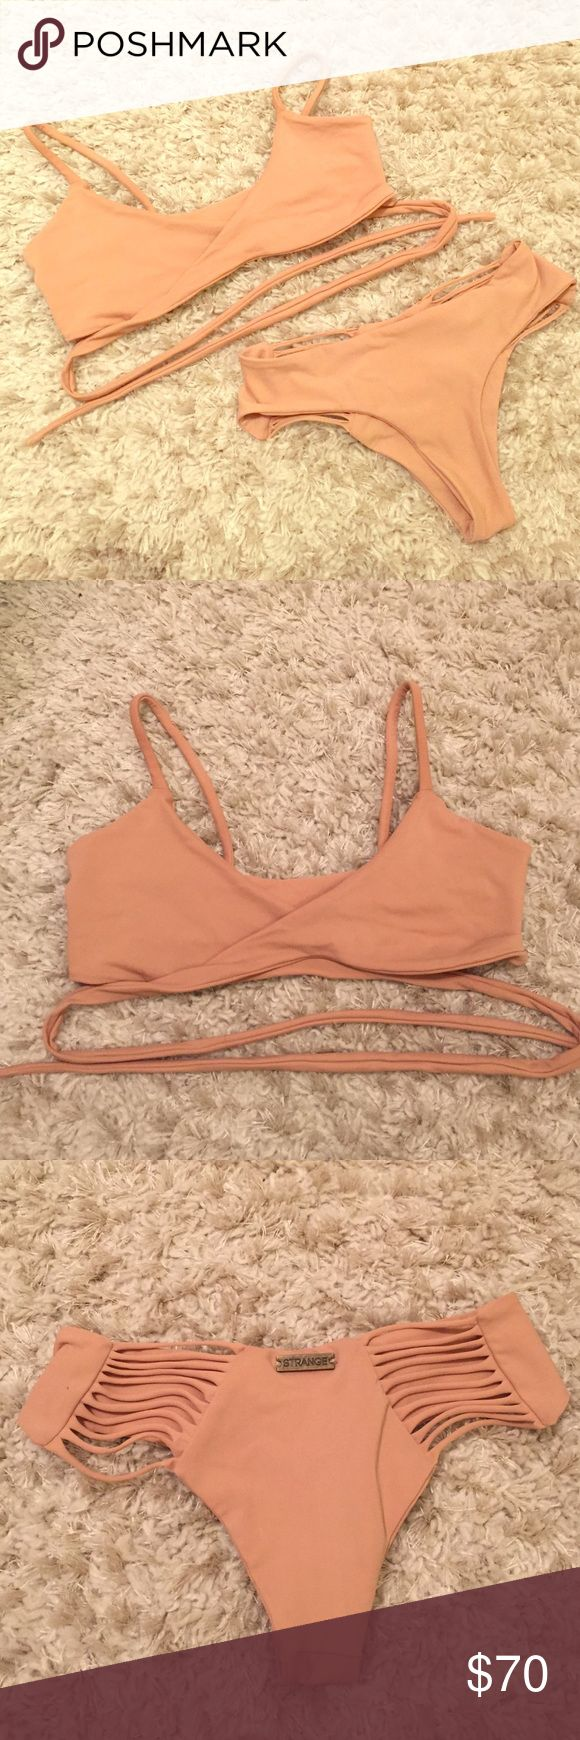 STRANGE BIKINI nude bikini set Worn once!! Great condition, great material. Not a known brand but great quality, look them up if needed. Adjustable wrap top. Can buy together or separate. STRANGE Swim Bikinis